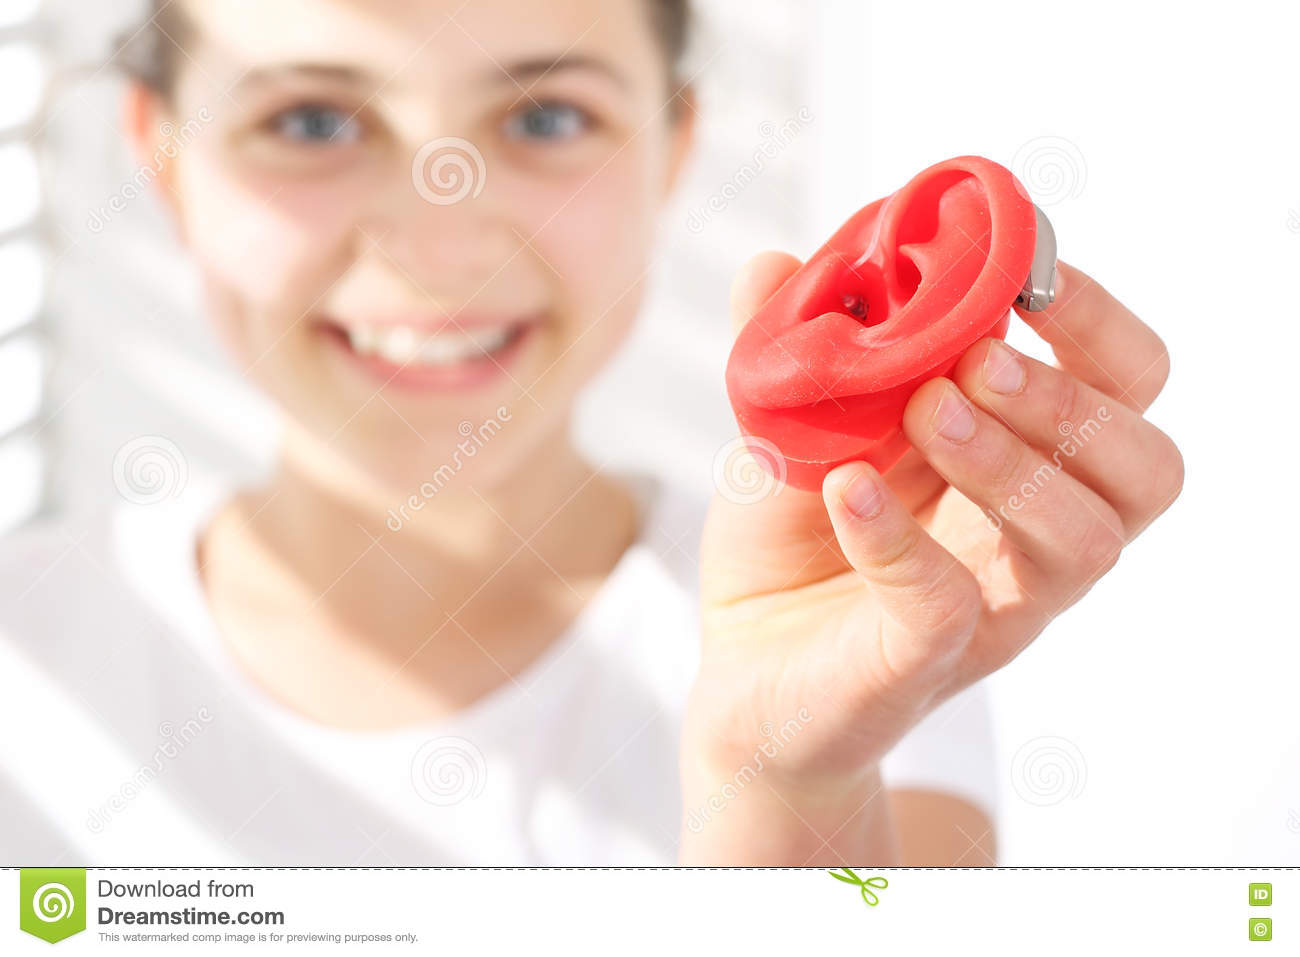 The hearing aid for a child.